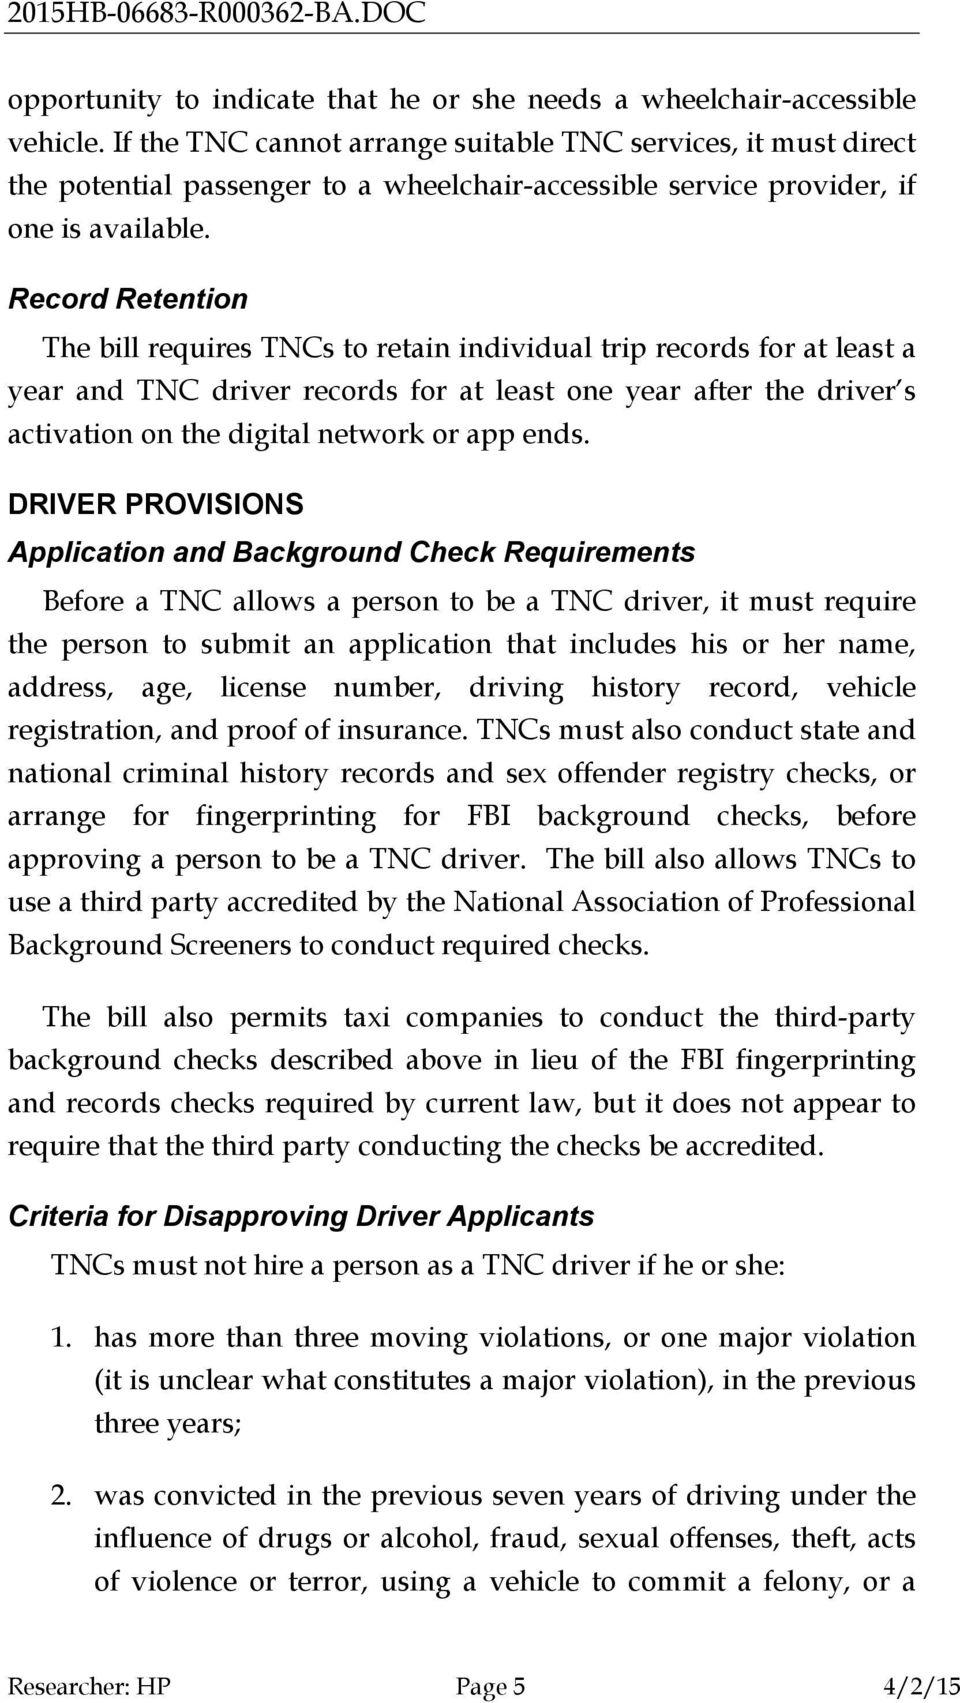 Record Retention The bill requires TNCs to retain individual trip records for at least a year and TNC driver records for at least one year after the driver s activation on the digital network or app